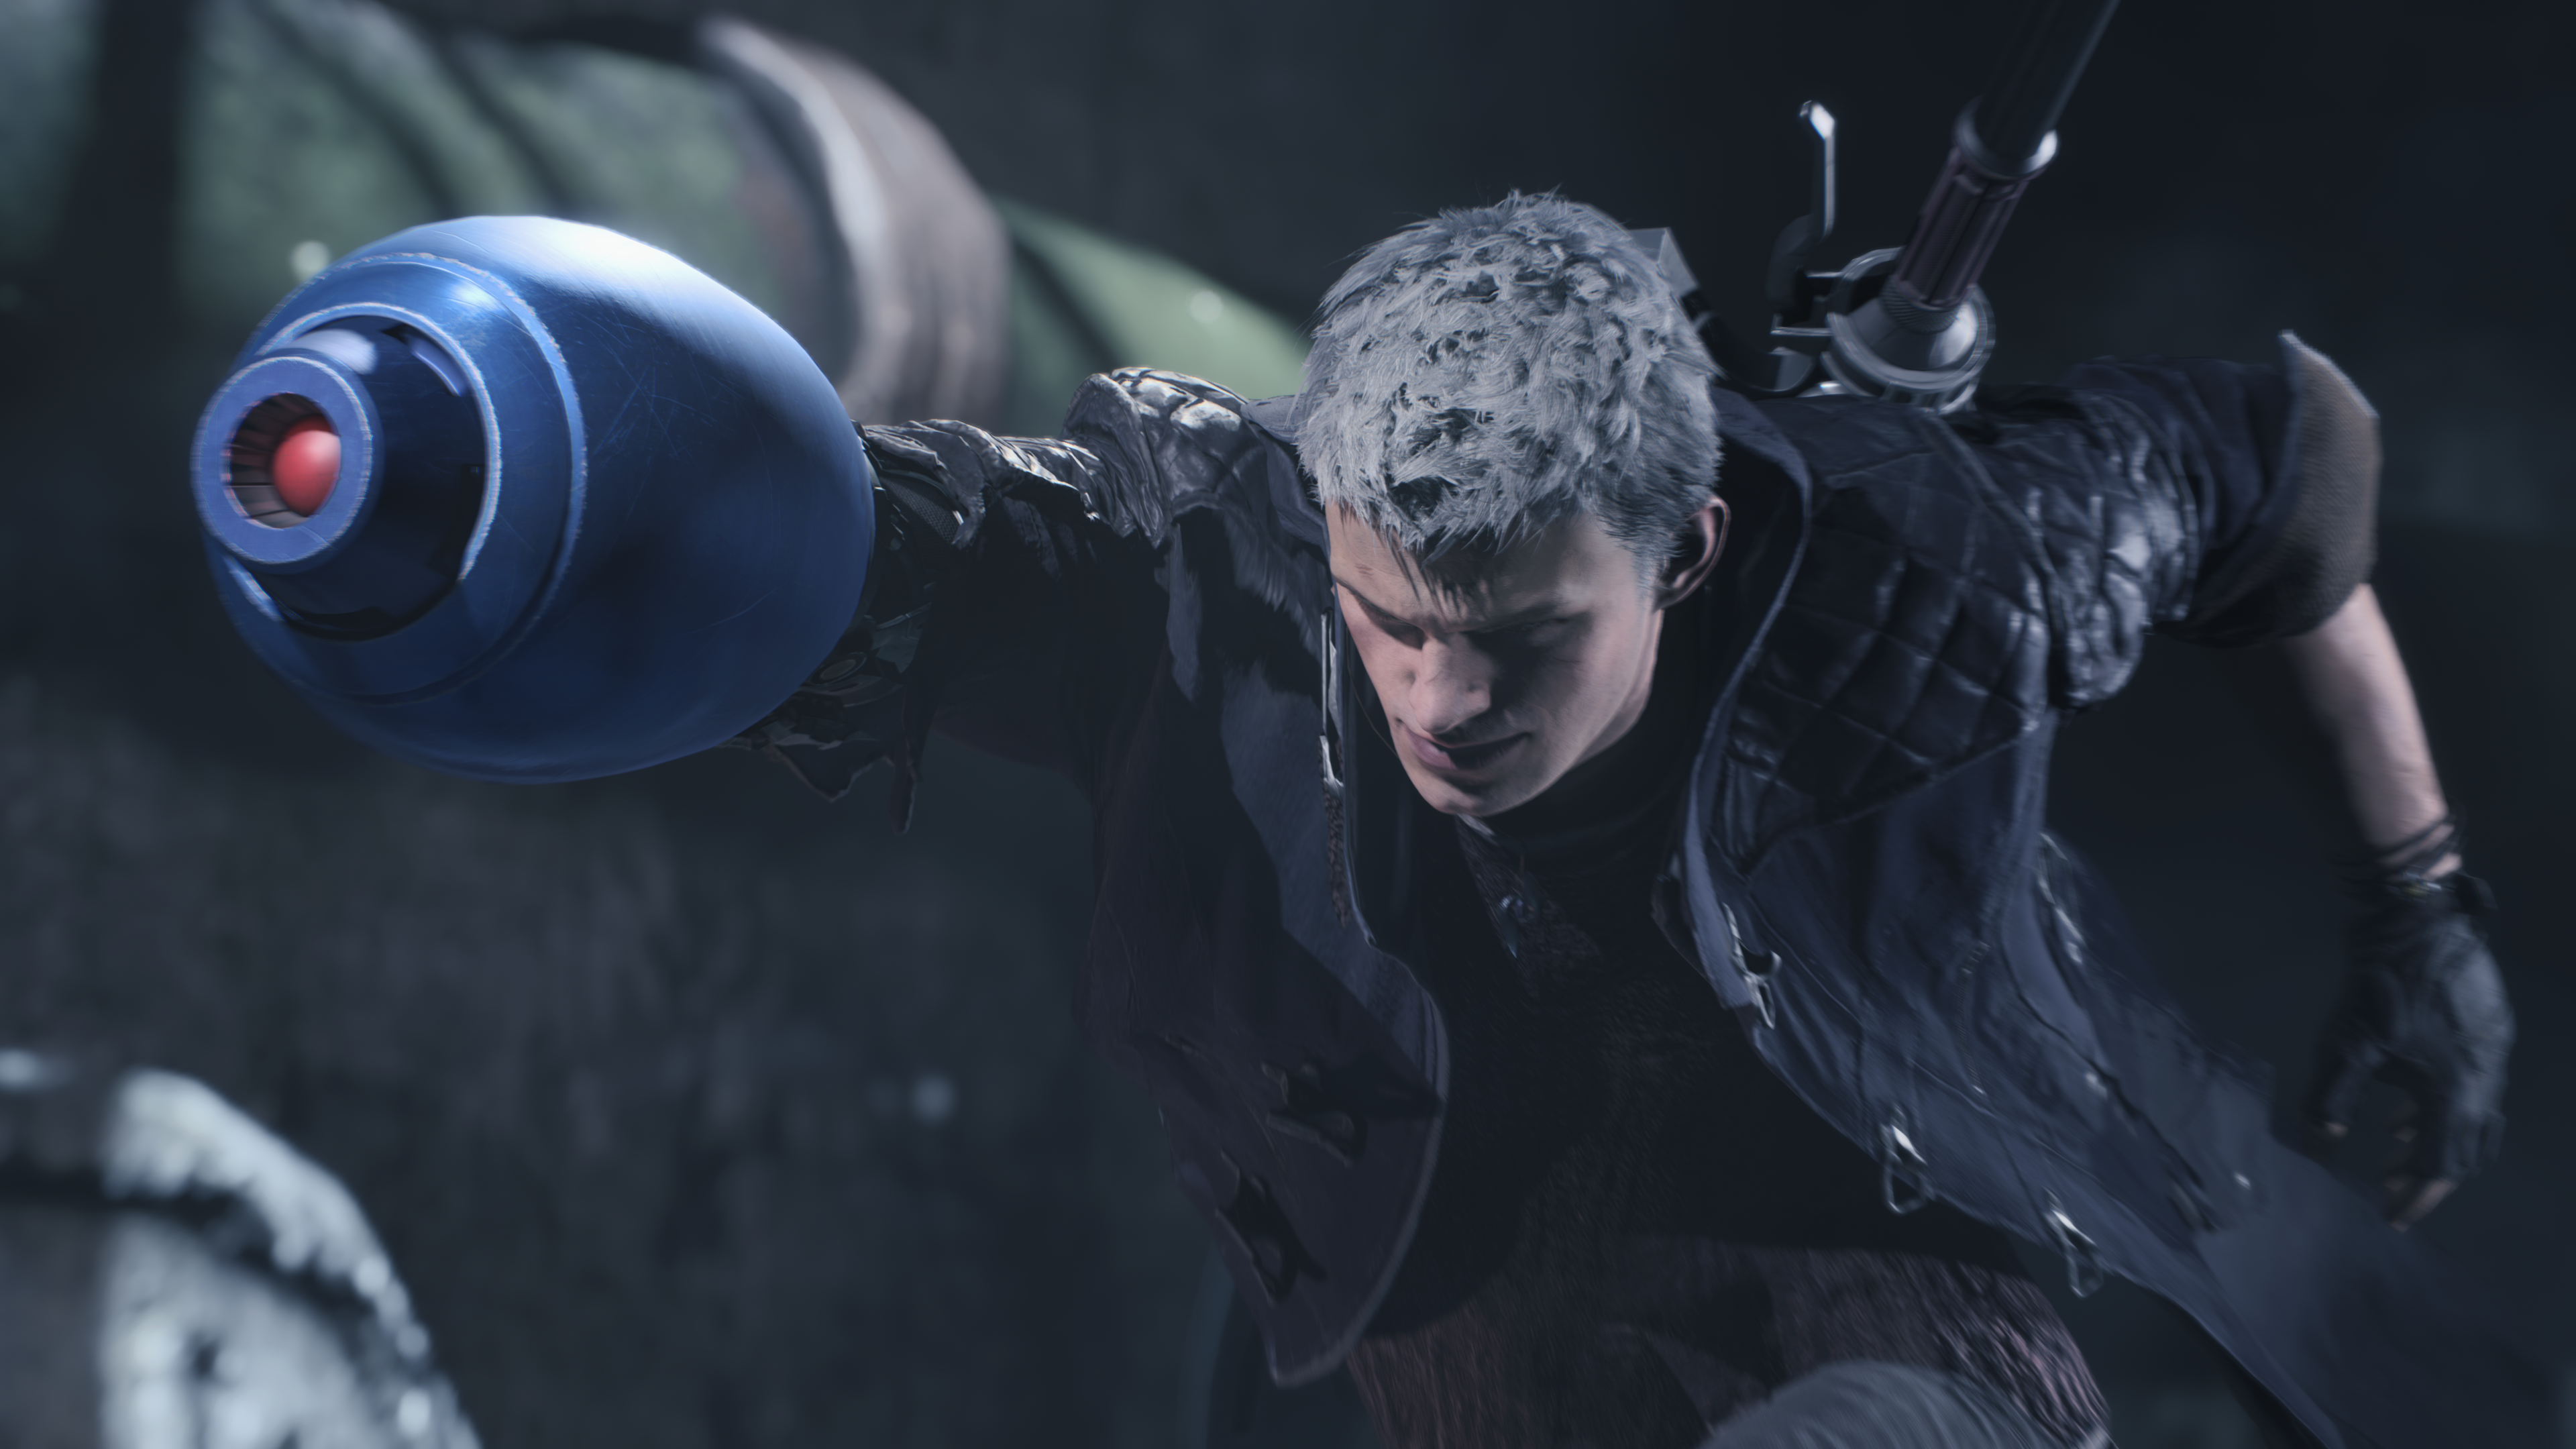 dmc5_screens_nero-megabusterdevilbreaker01